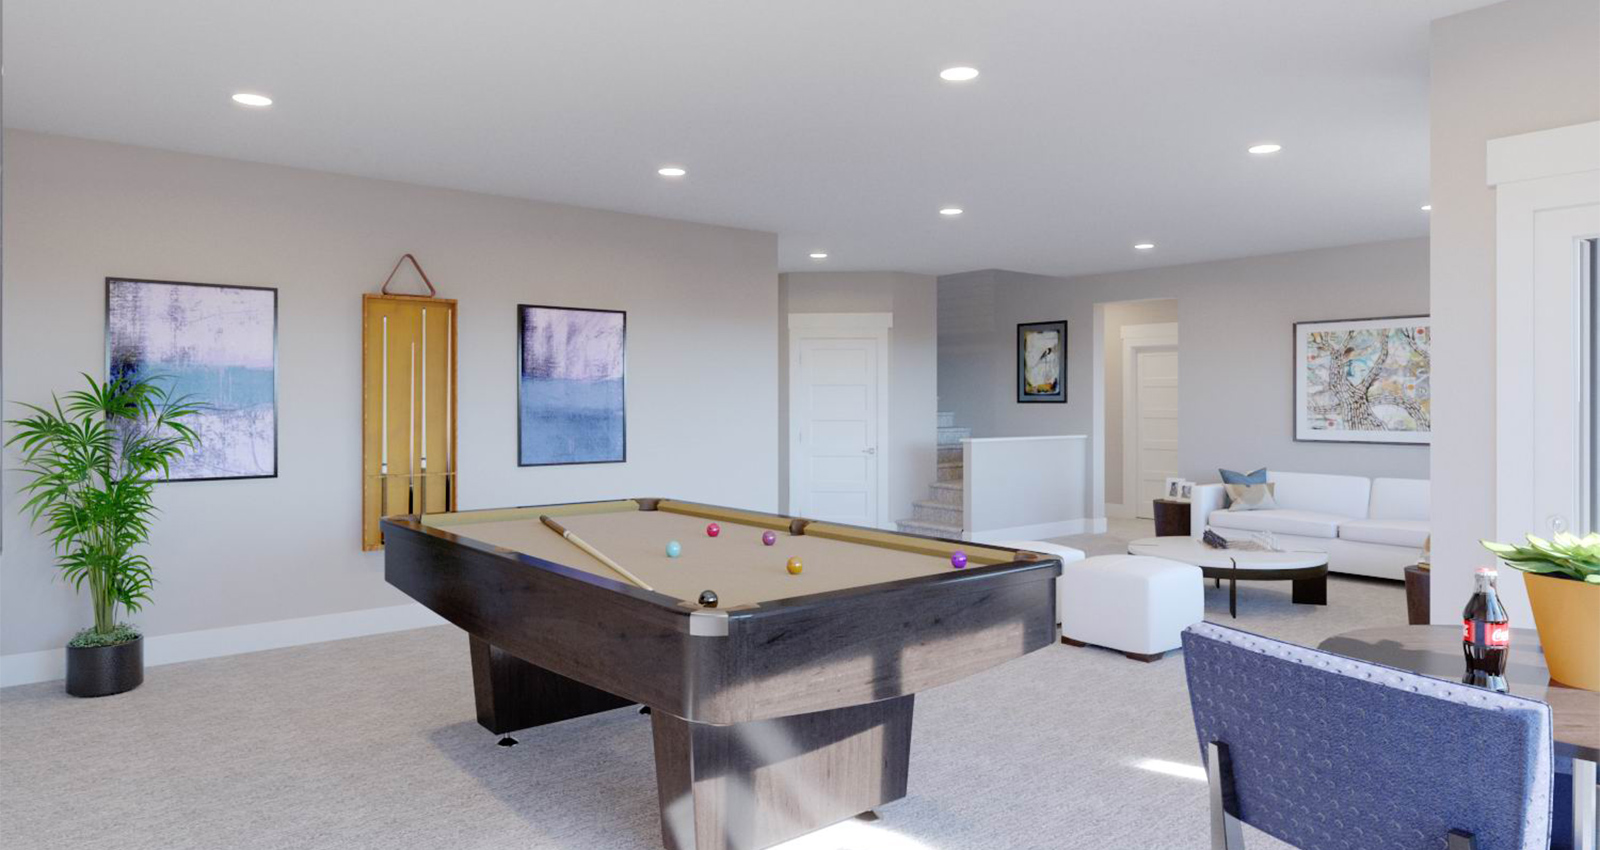 luxury game room in townhome basement